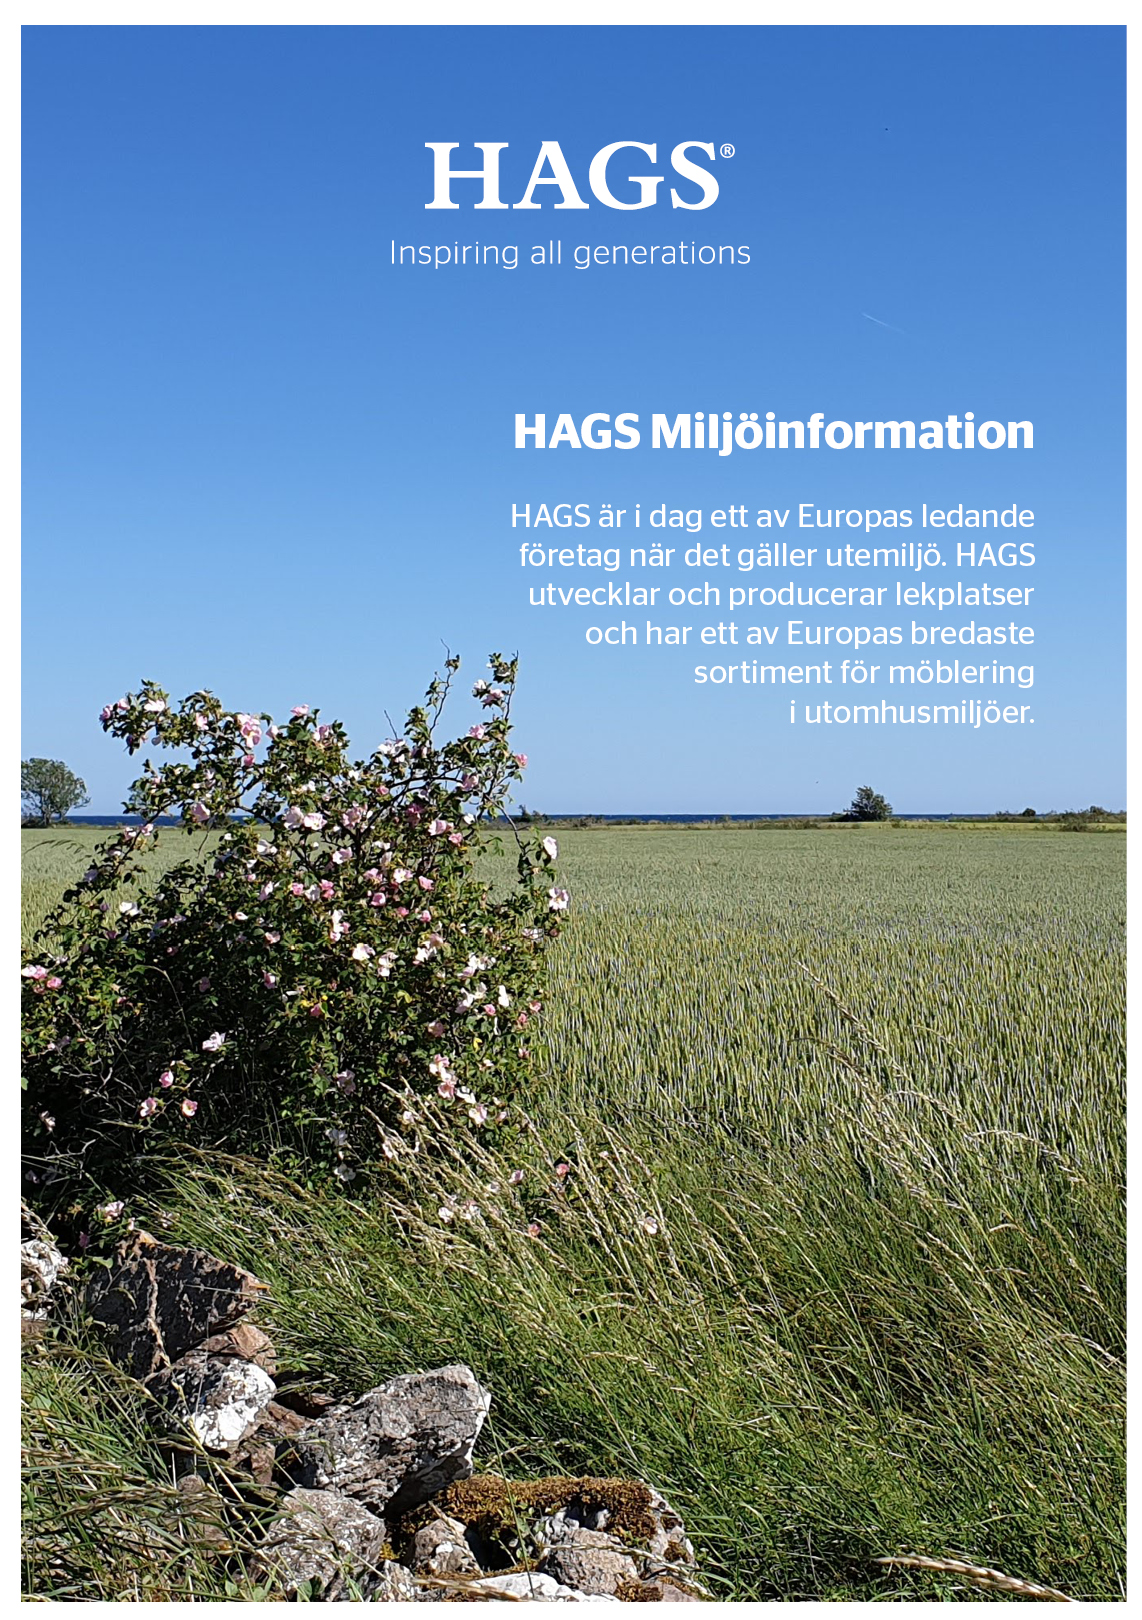 HAGS Miljöinformation